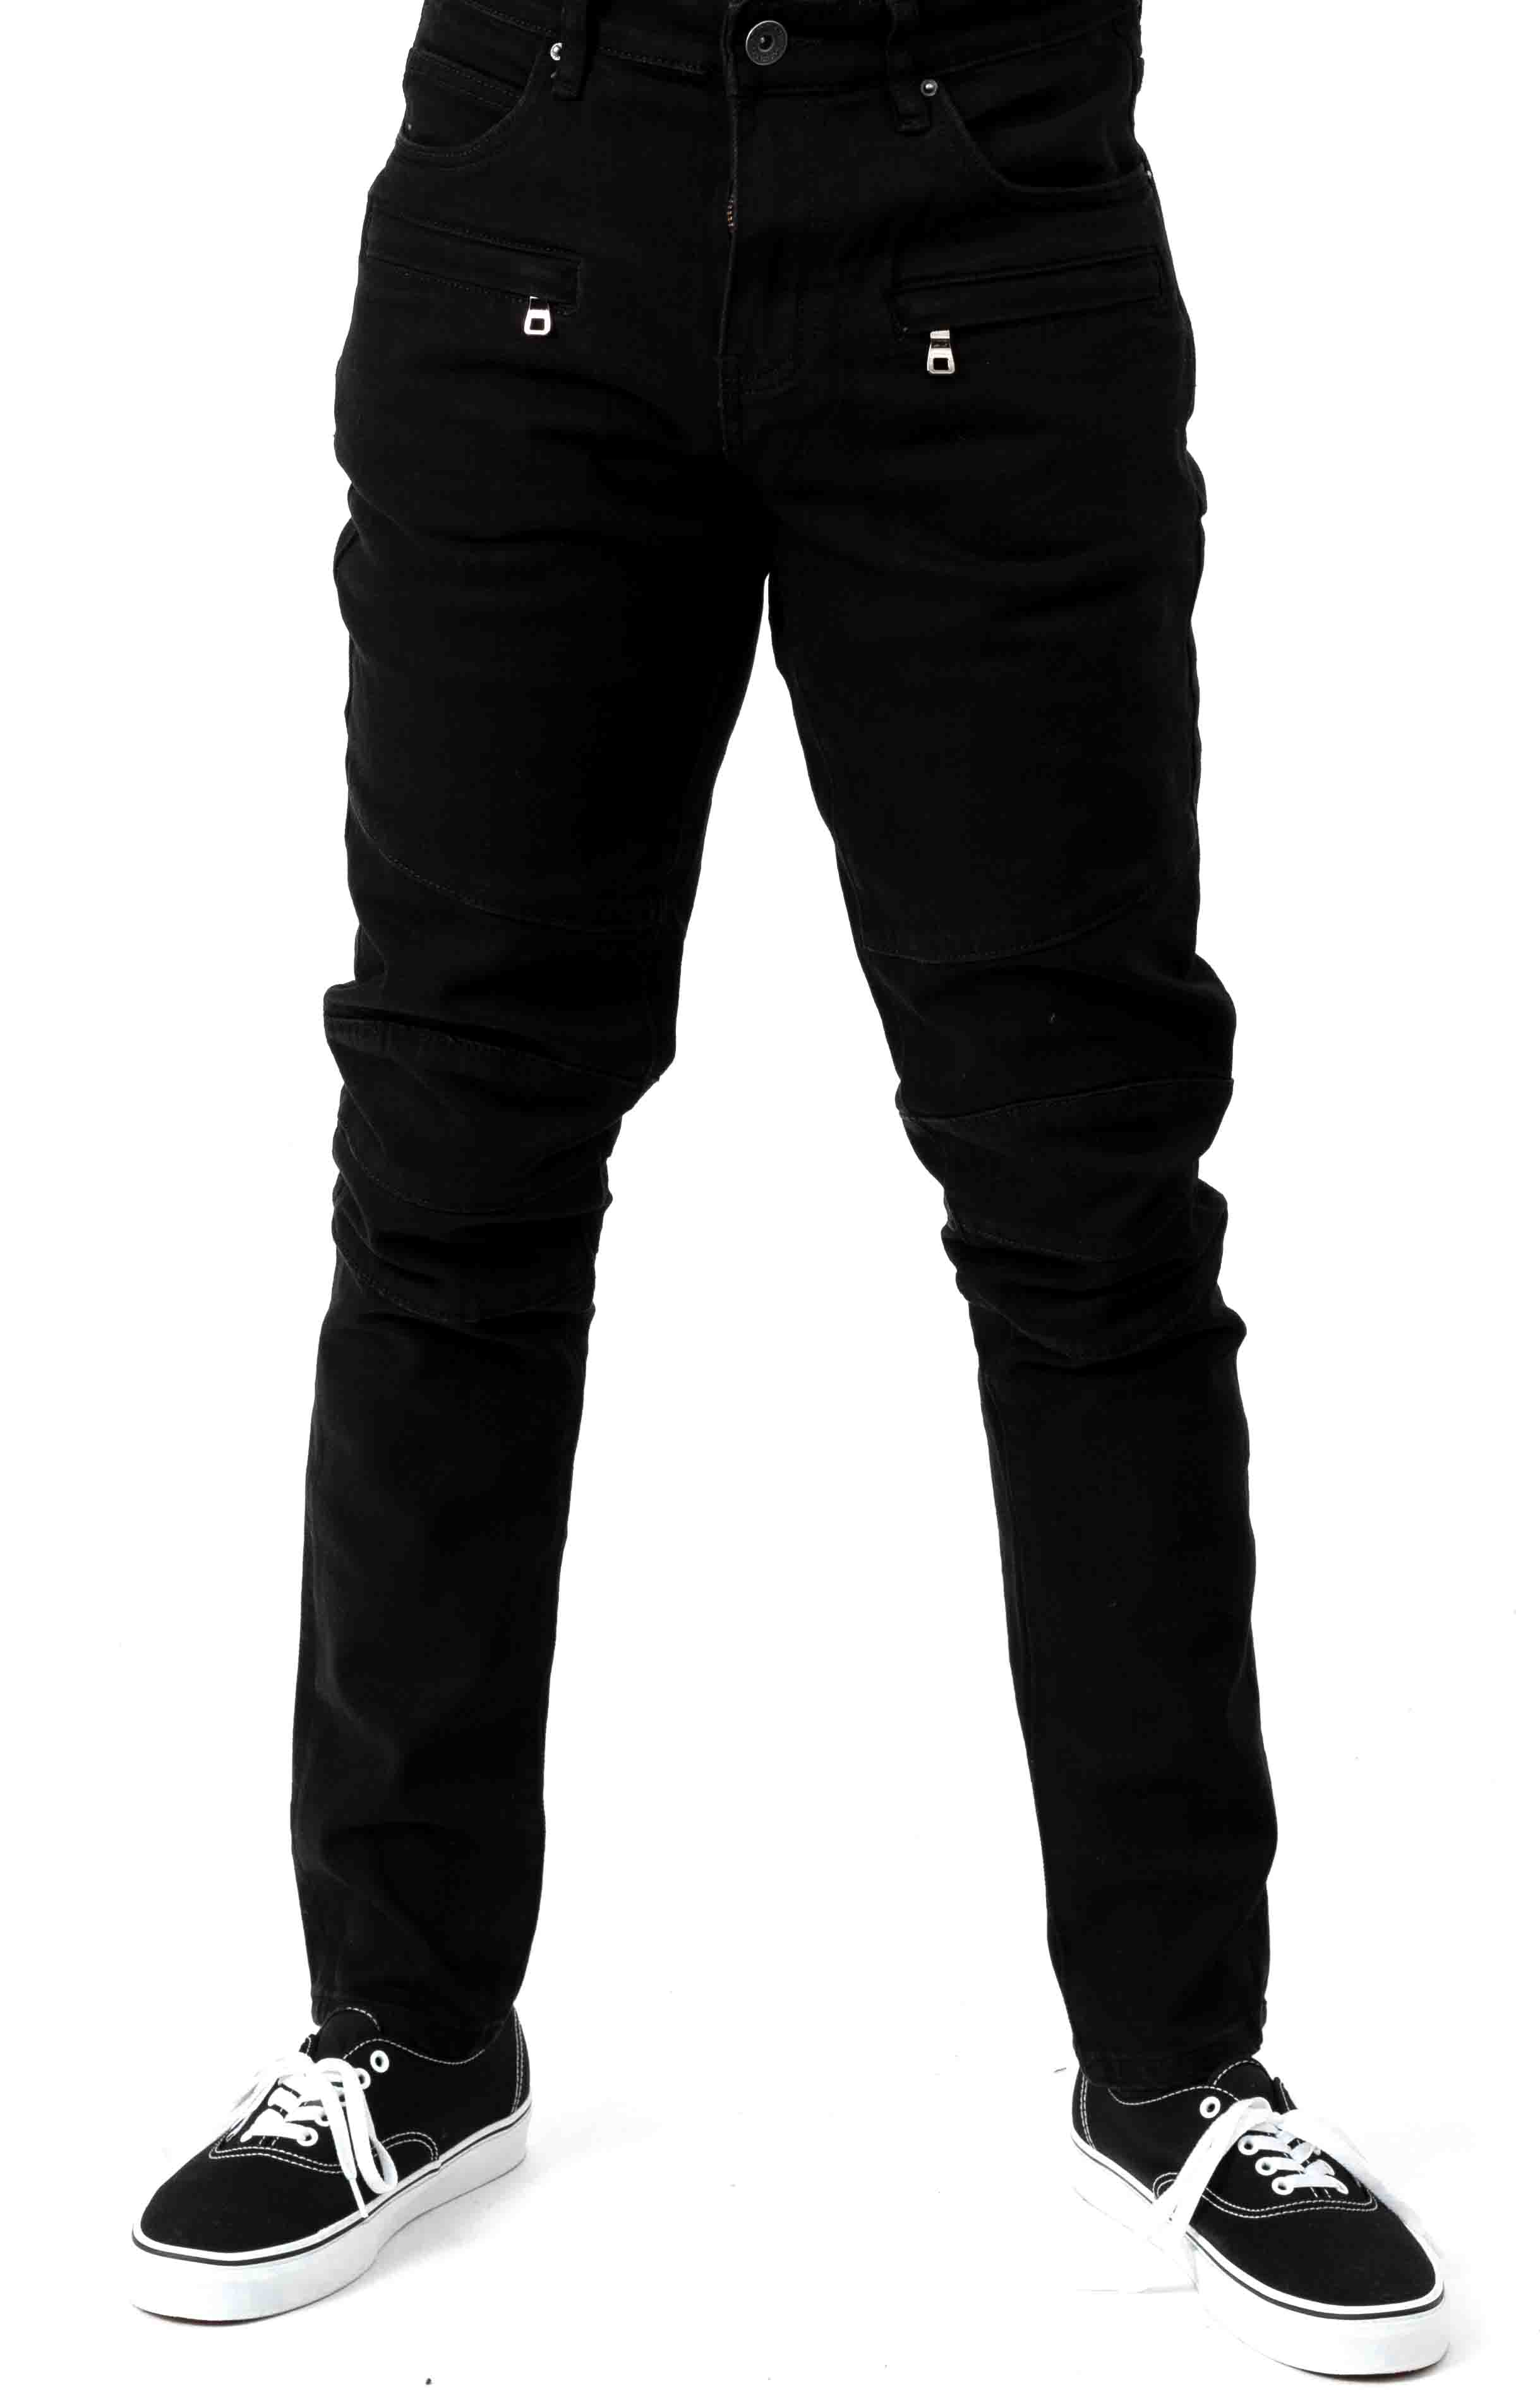 (CRYSPF18-18) Montana Denim Jeans - Black